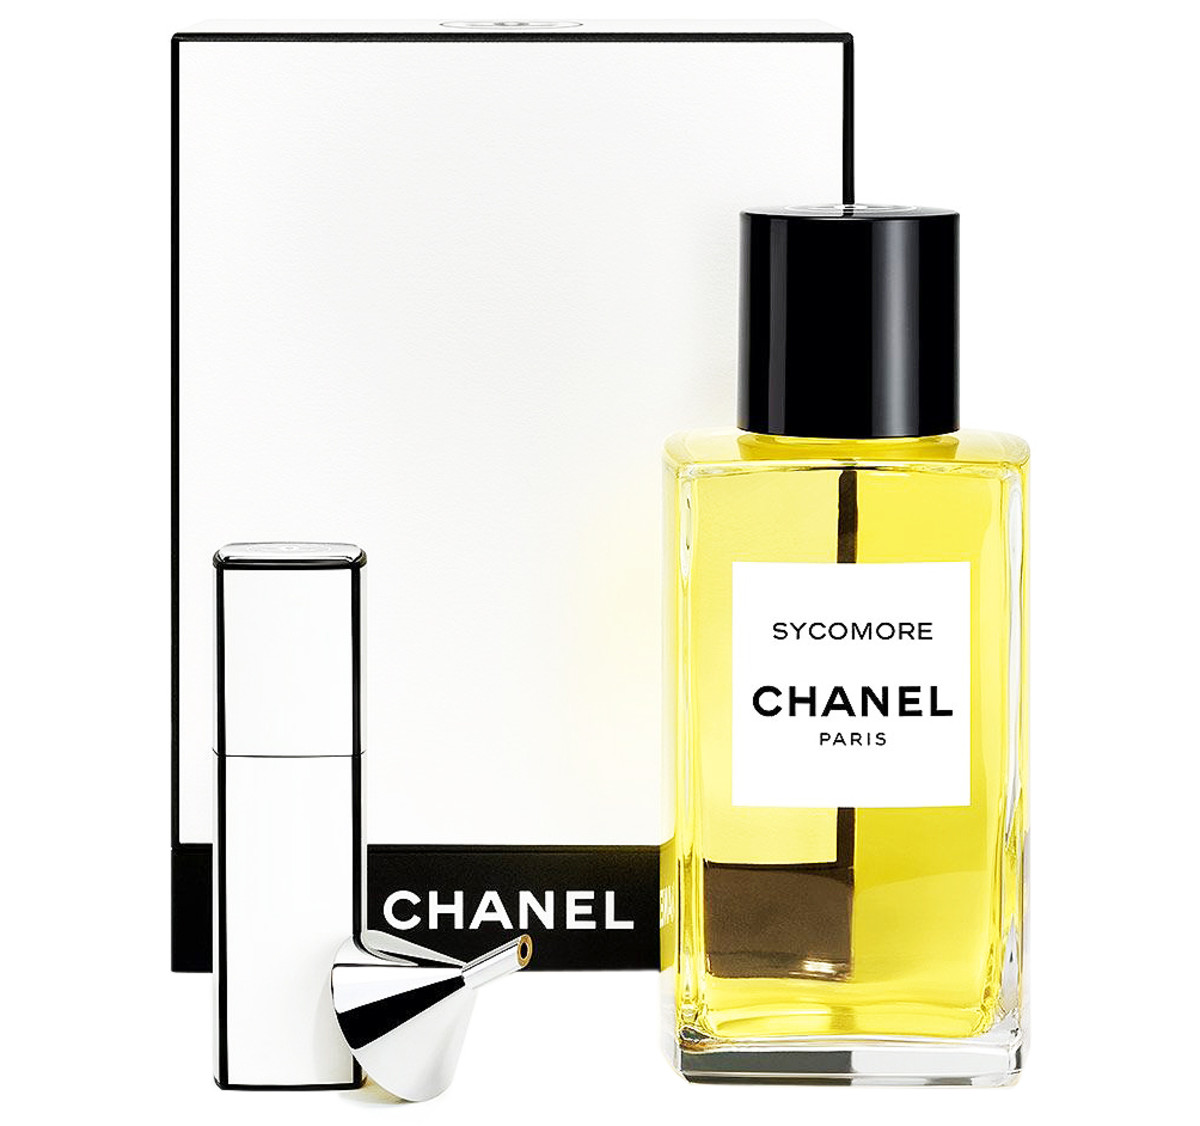 Chanel Les Exclusifs Sycomore_cosy scents for colder weather-BEAUTYGEEKS